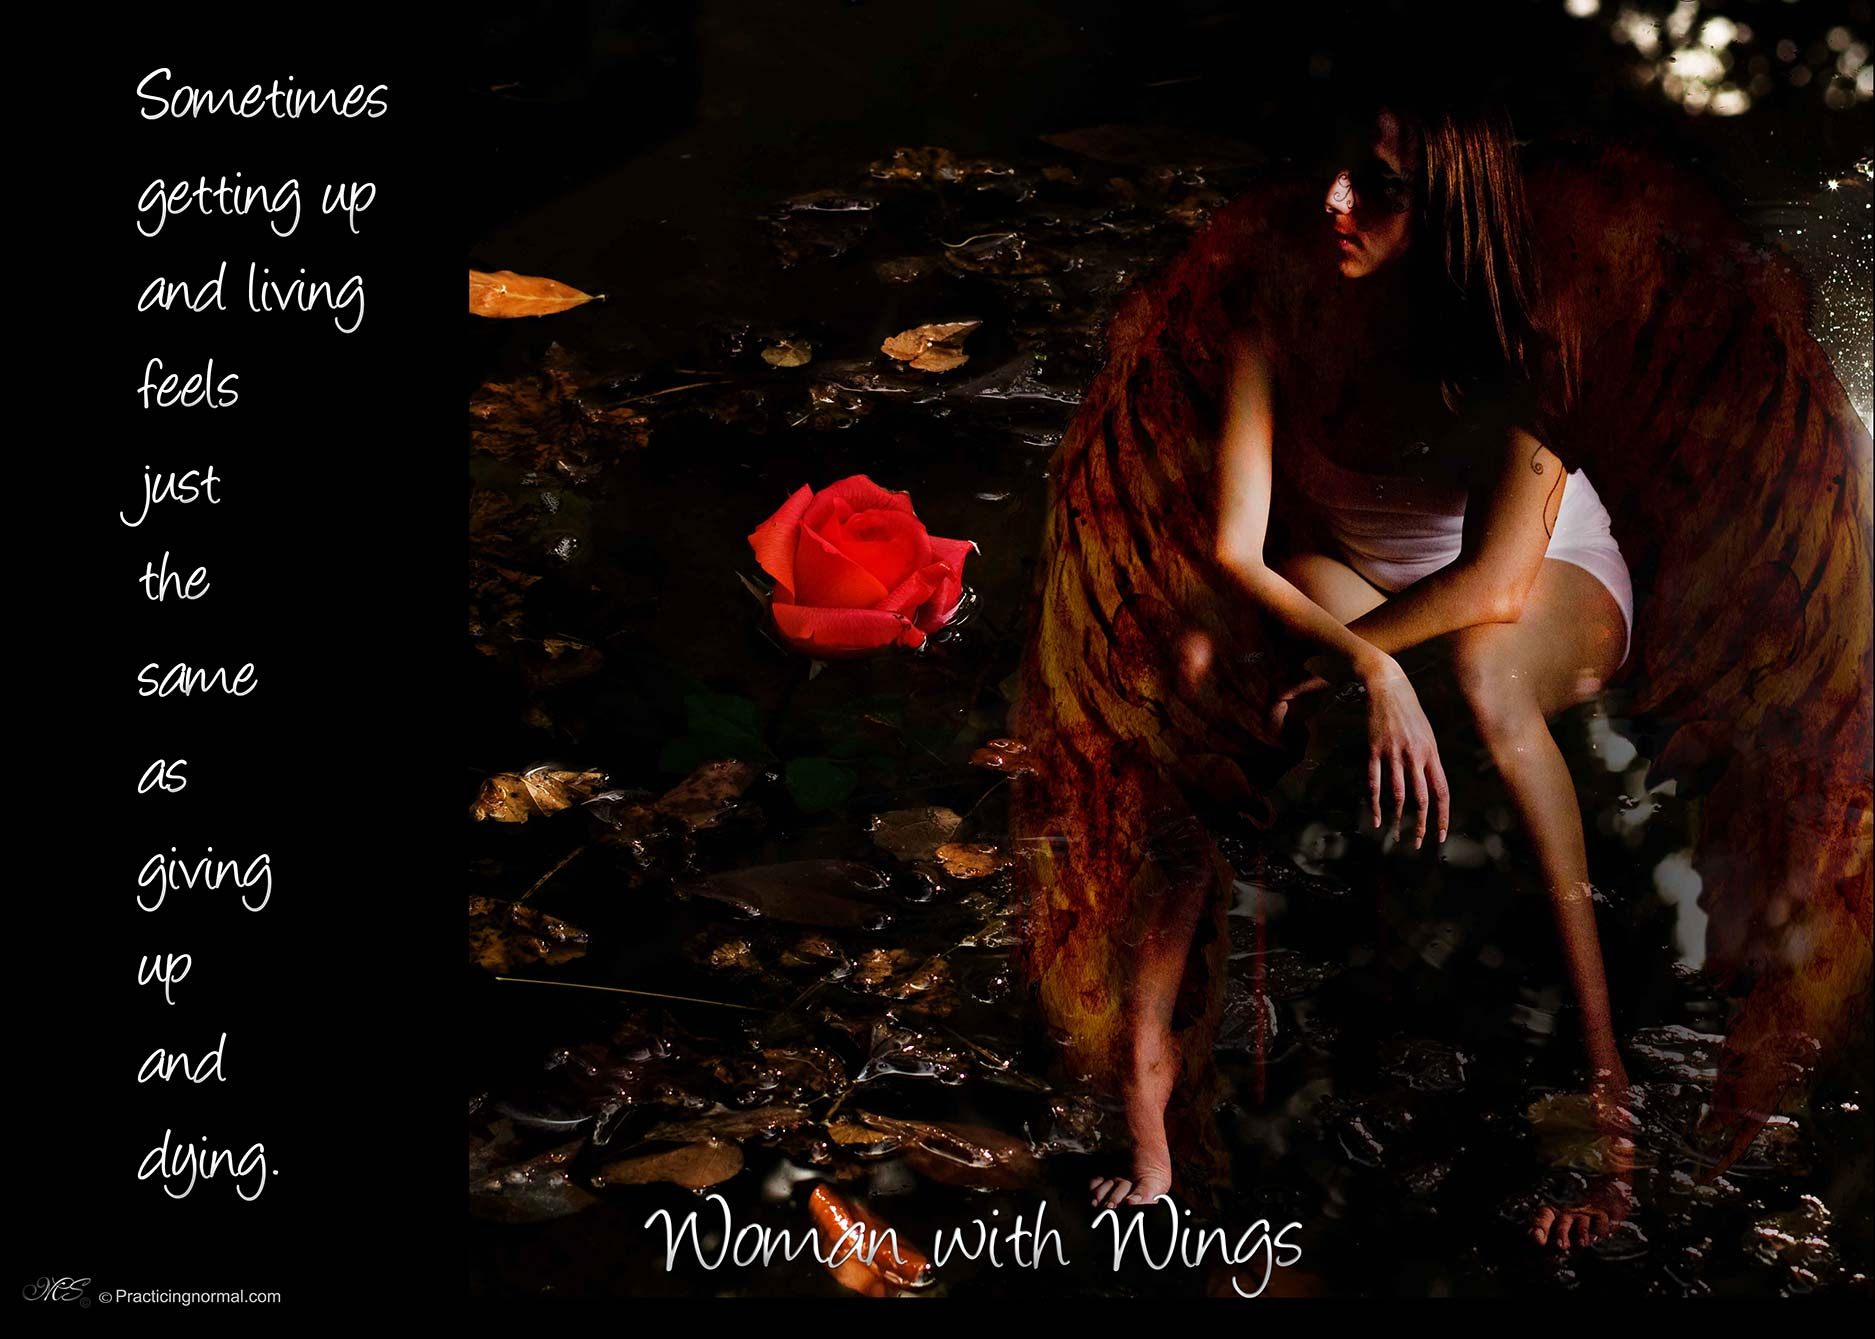 Woman with Wings, an artistic photo series dealing with the healing process after sexual trauma.  See more photos at Practicingnormal.com